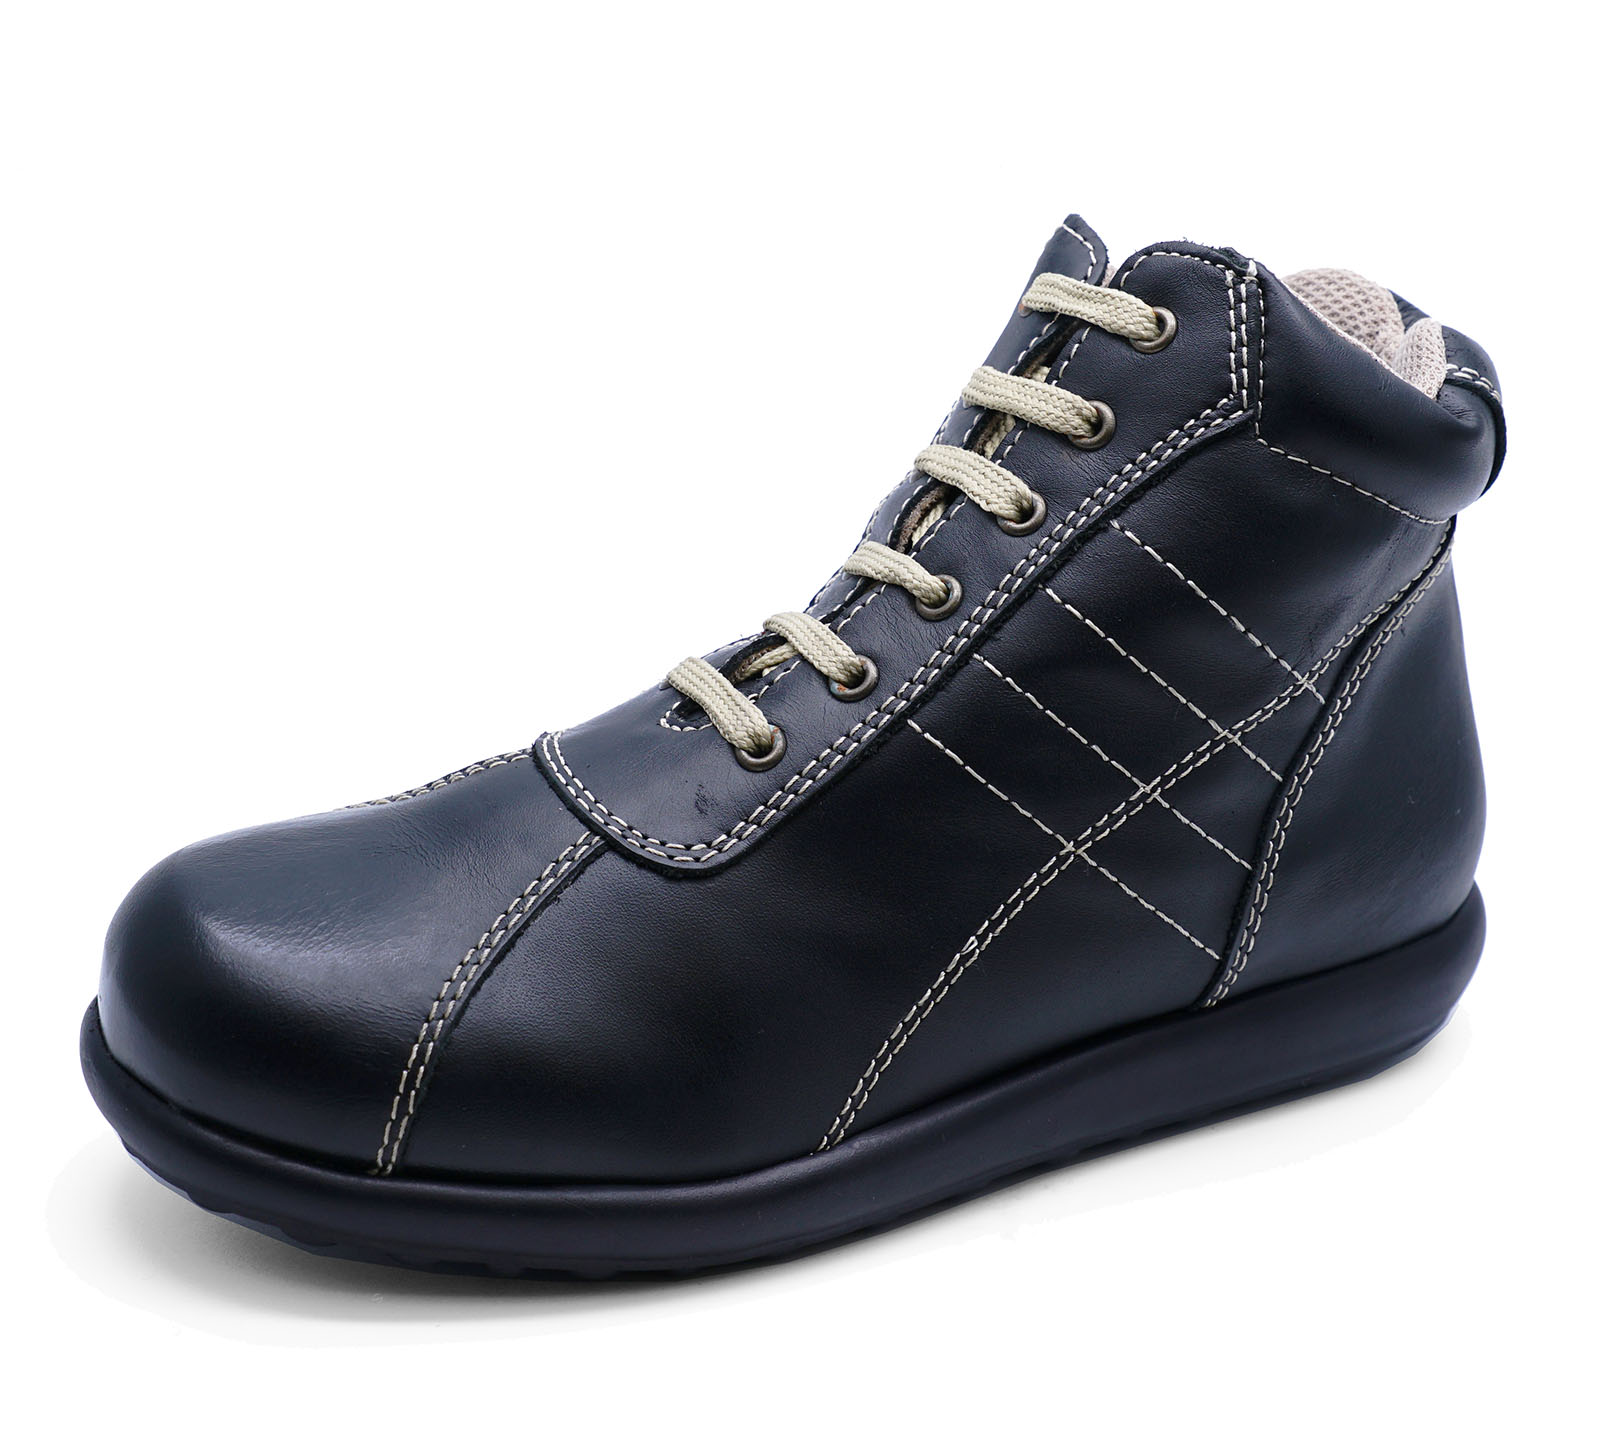 Many women like the look and styling of our men's boots and use a simple conversion to find the right size. To determine what men's size you wear, simply subtract sizes from your current ladies shoe rutor-org.ga: (+1)